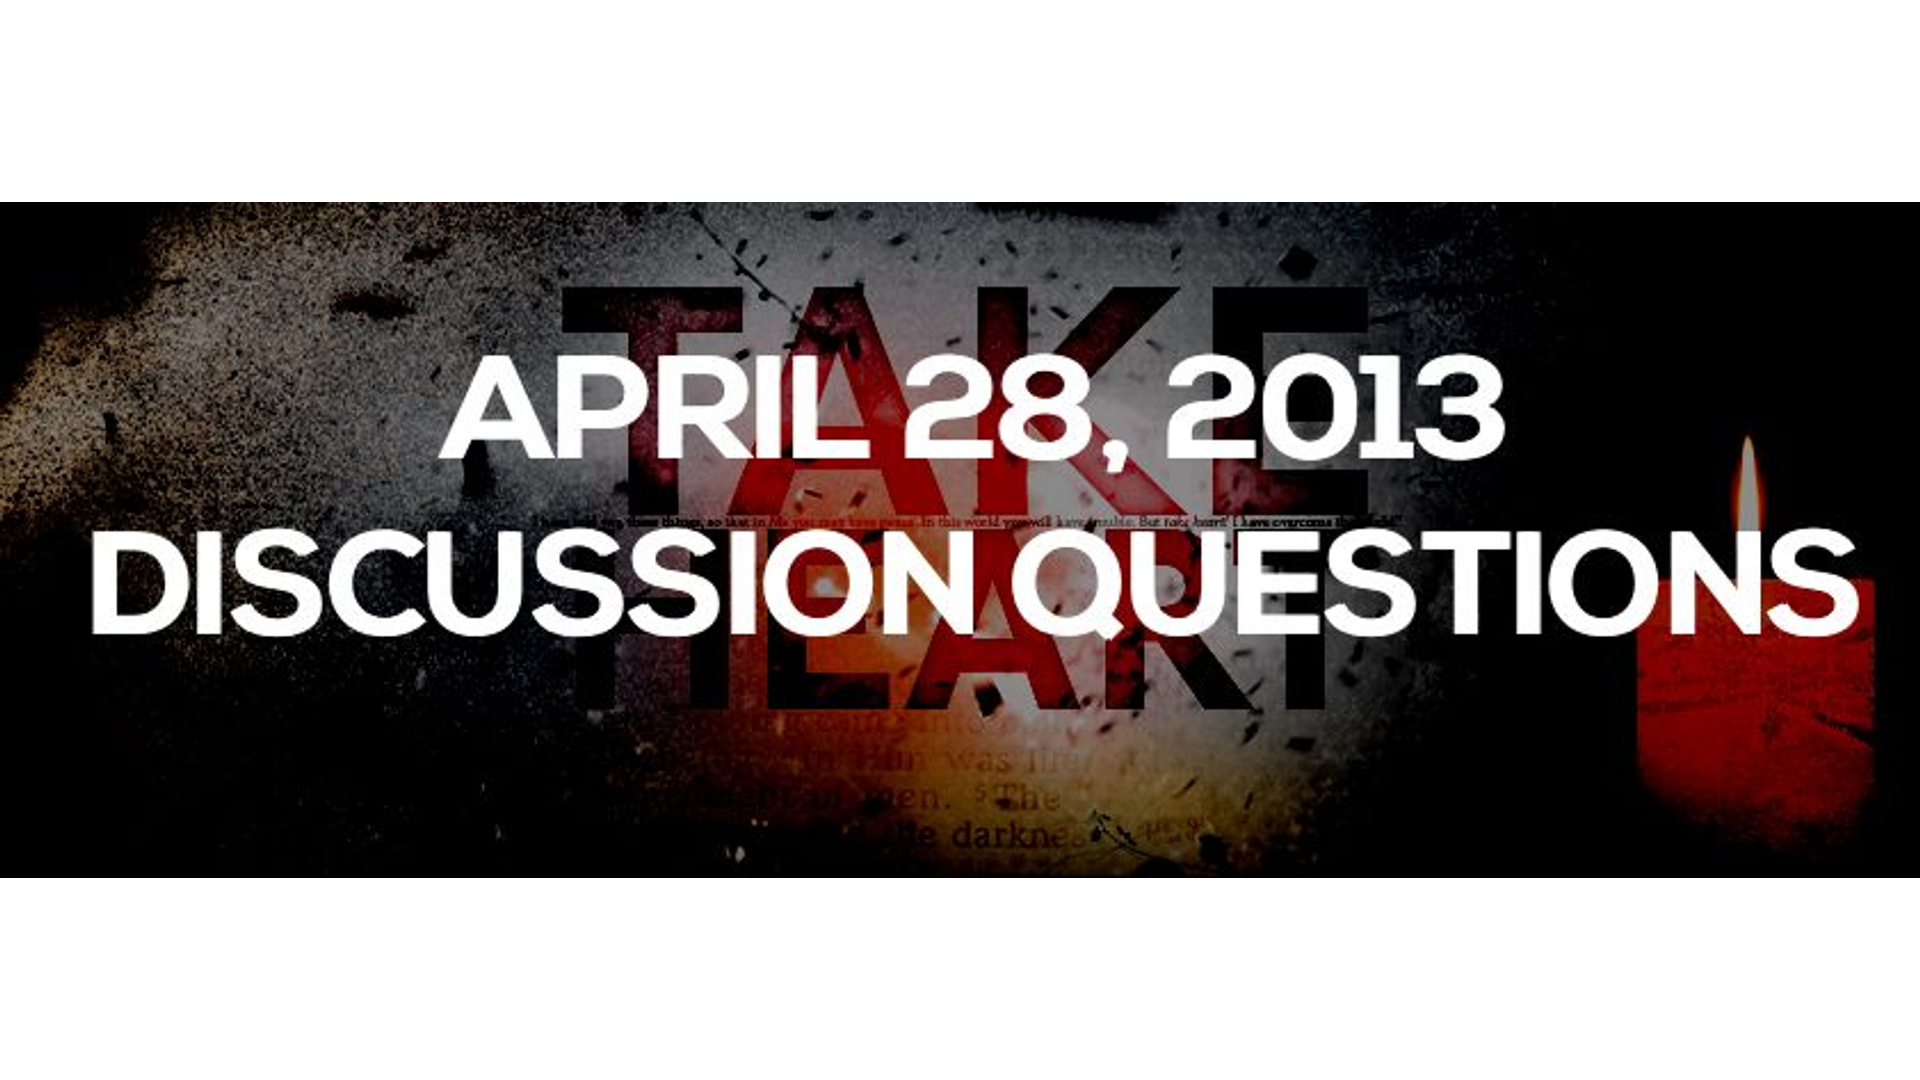 DISCUSSION QUESTIONS: APRIL 28, 2013 Hero Image